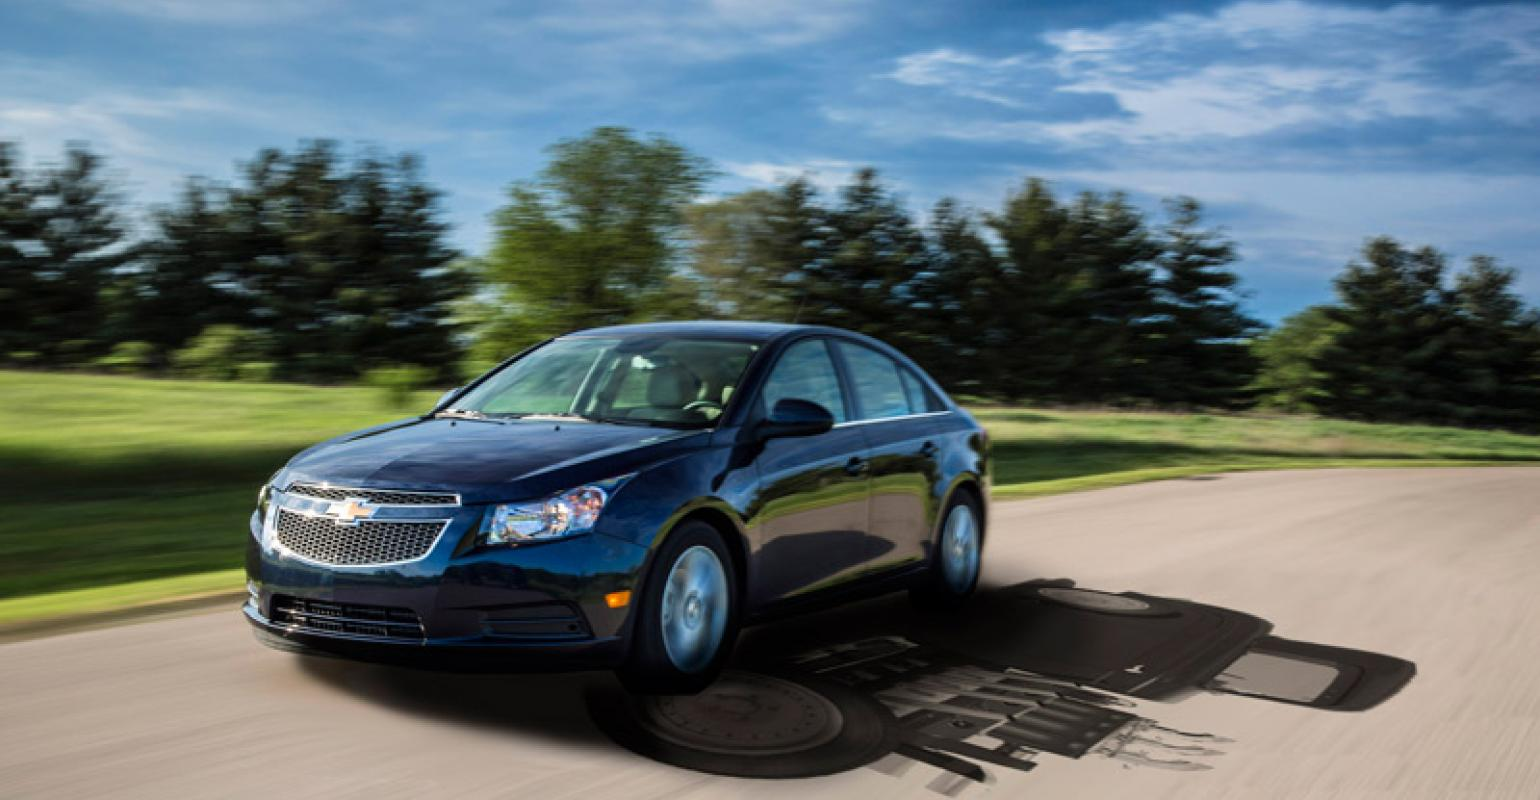 Uneven Quality Trips Up '14 Chevy Cruze Clean Turbo Diesel